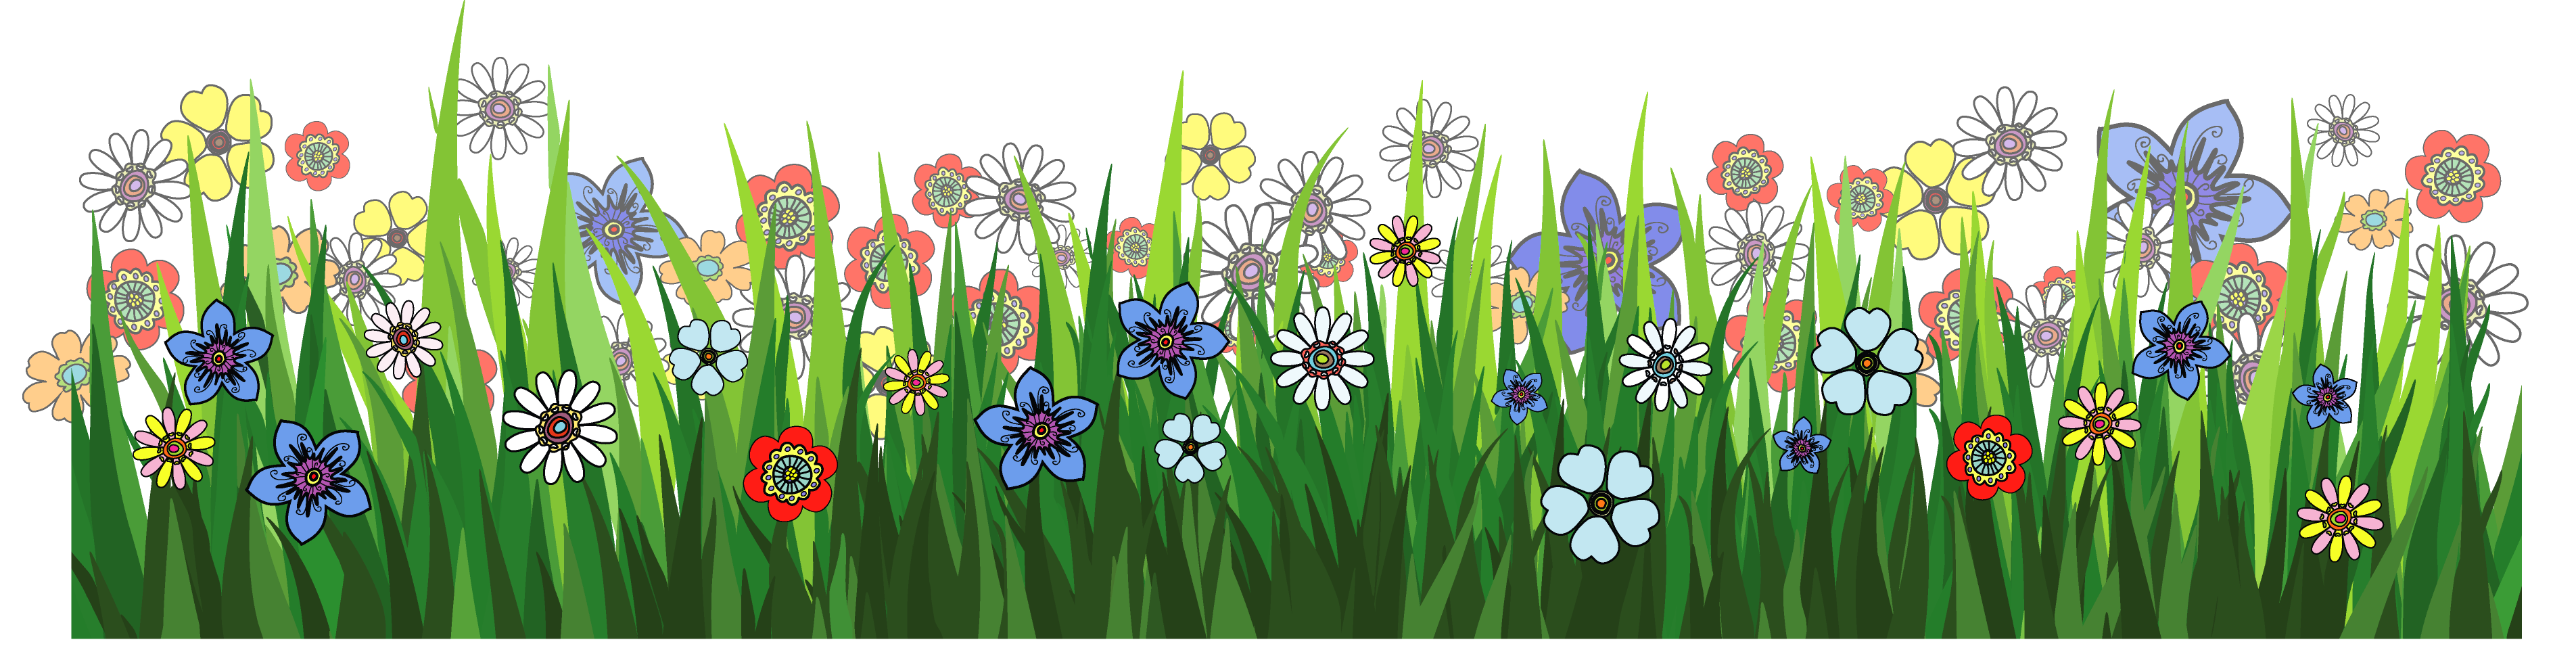 Flower bed clipart clip art free stock Grass Ground with Flowers PNG Picture | Gallery Yopriceville - High ... clip art free stock